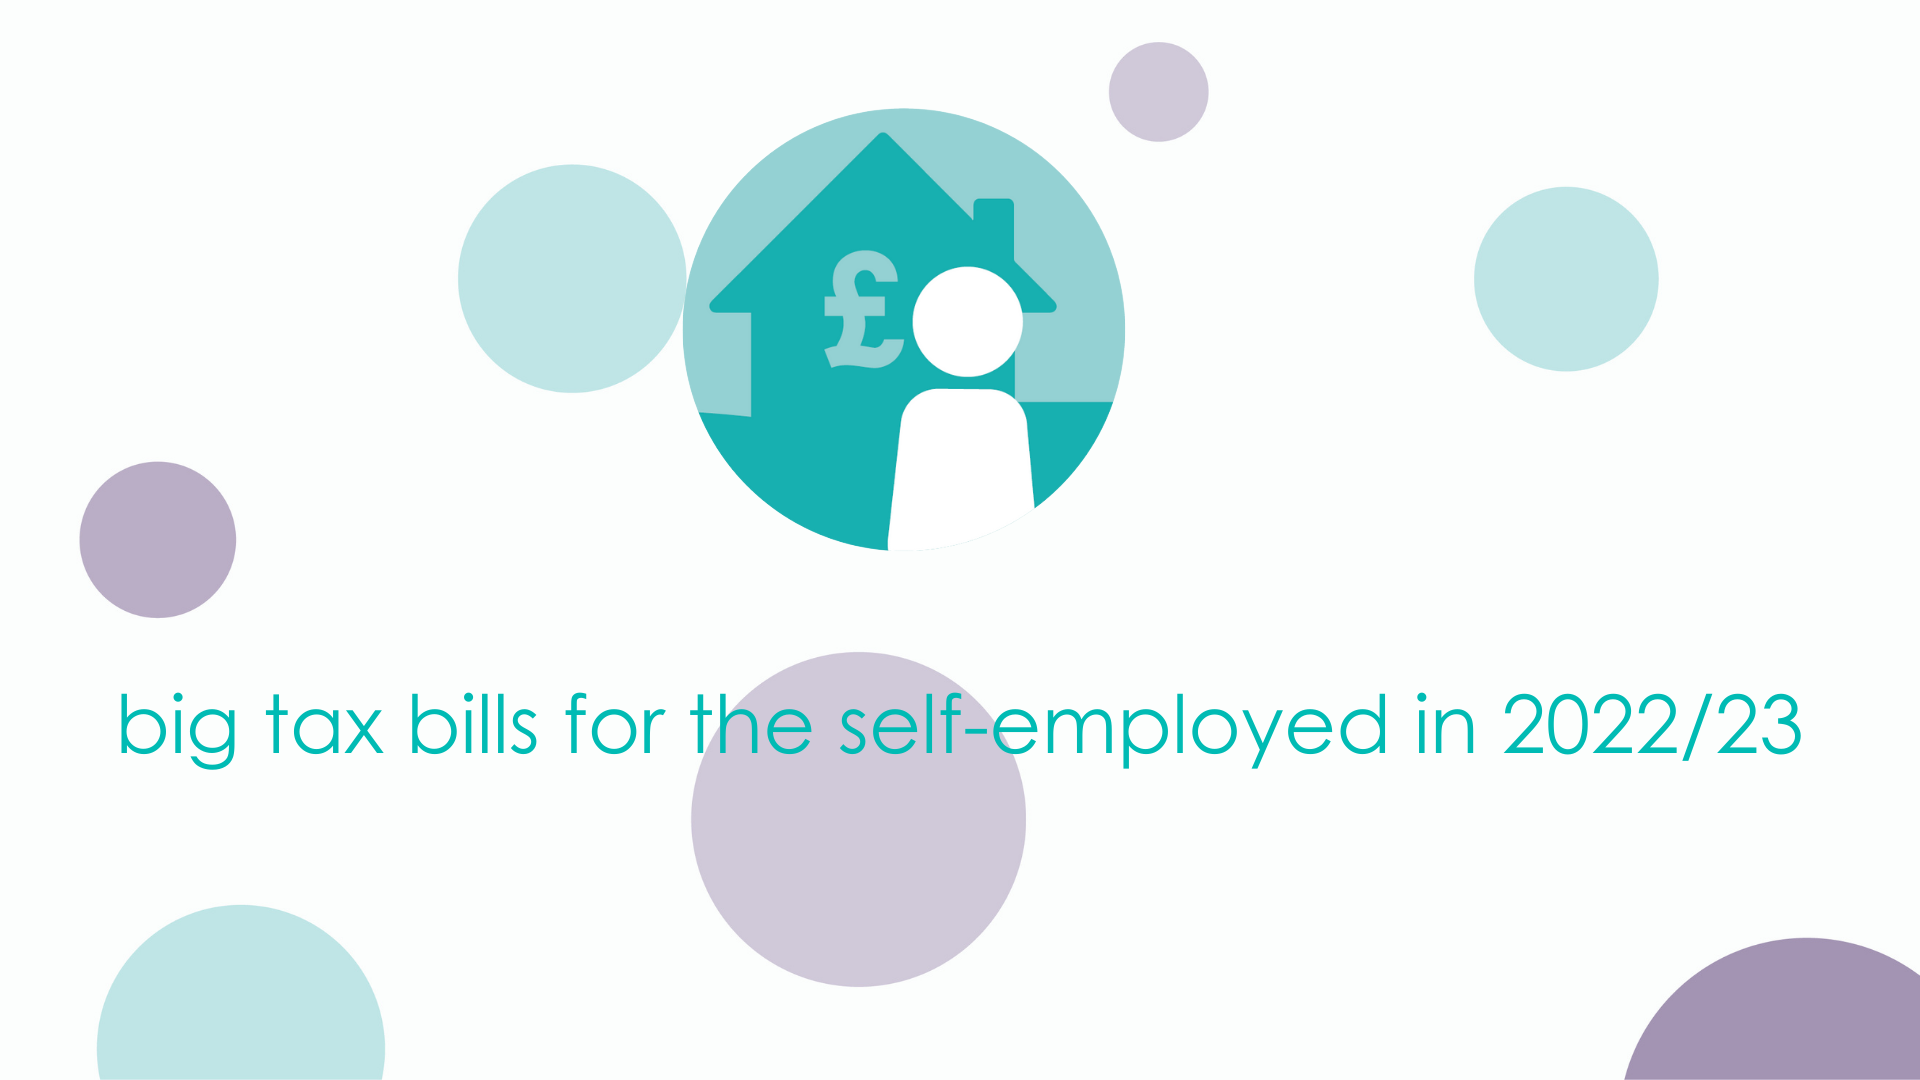 big tax bills for the self-employed in 2022/23